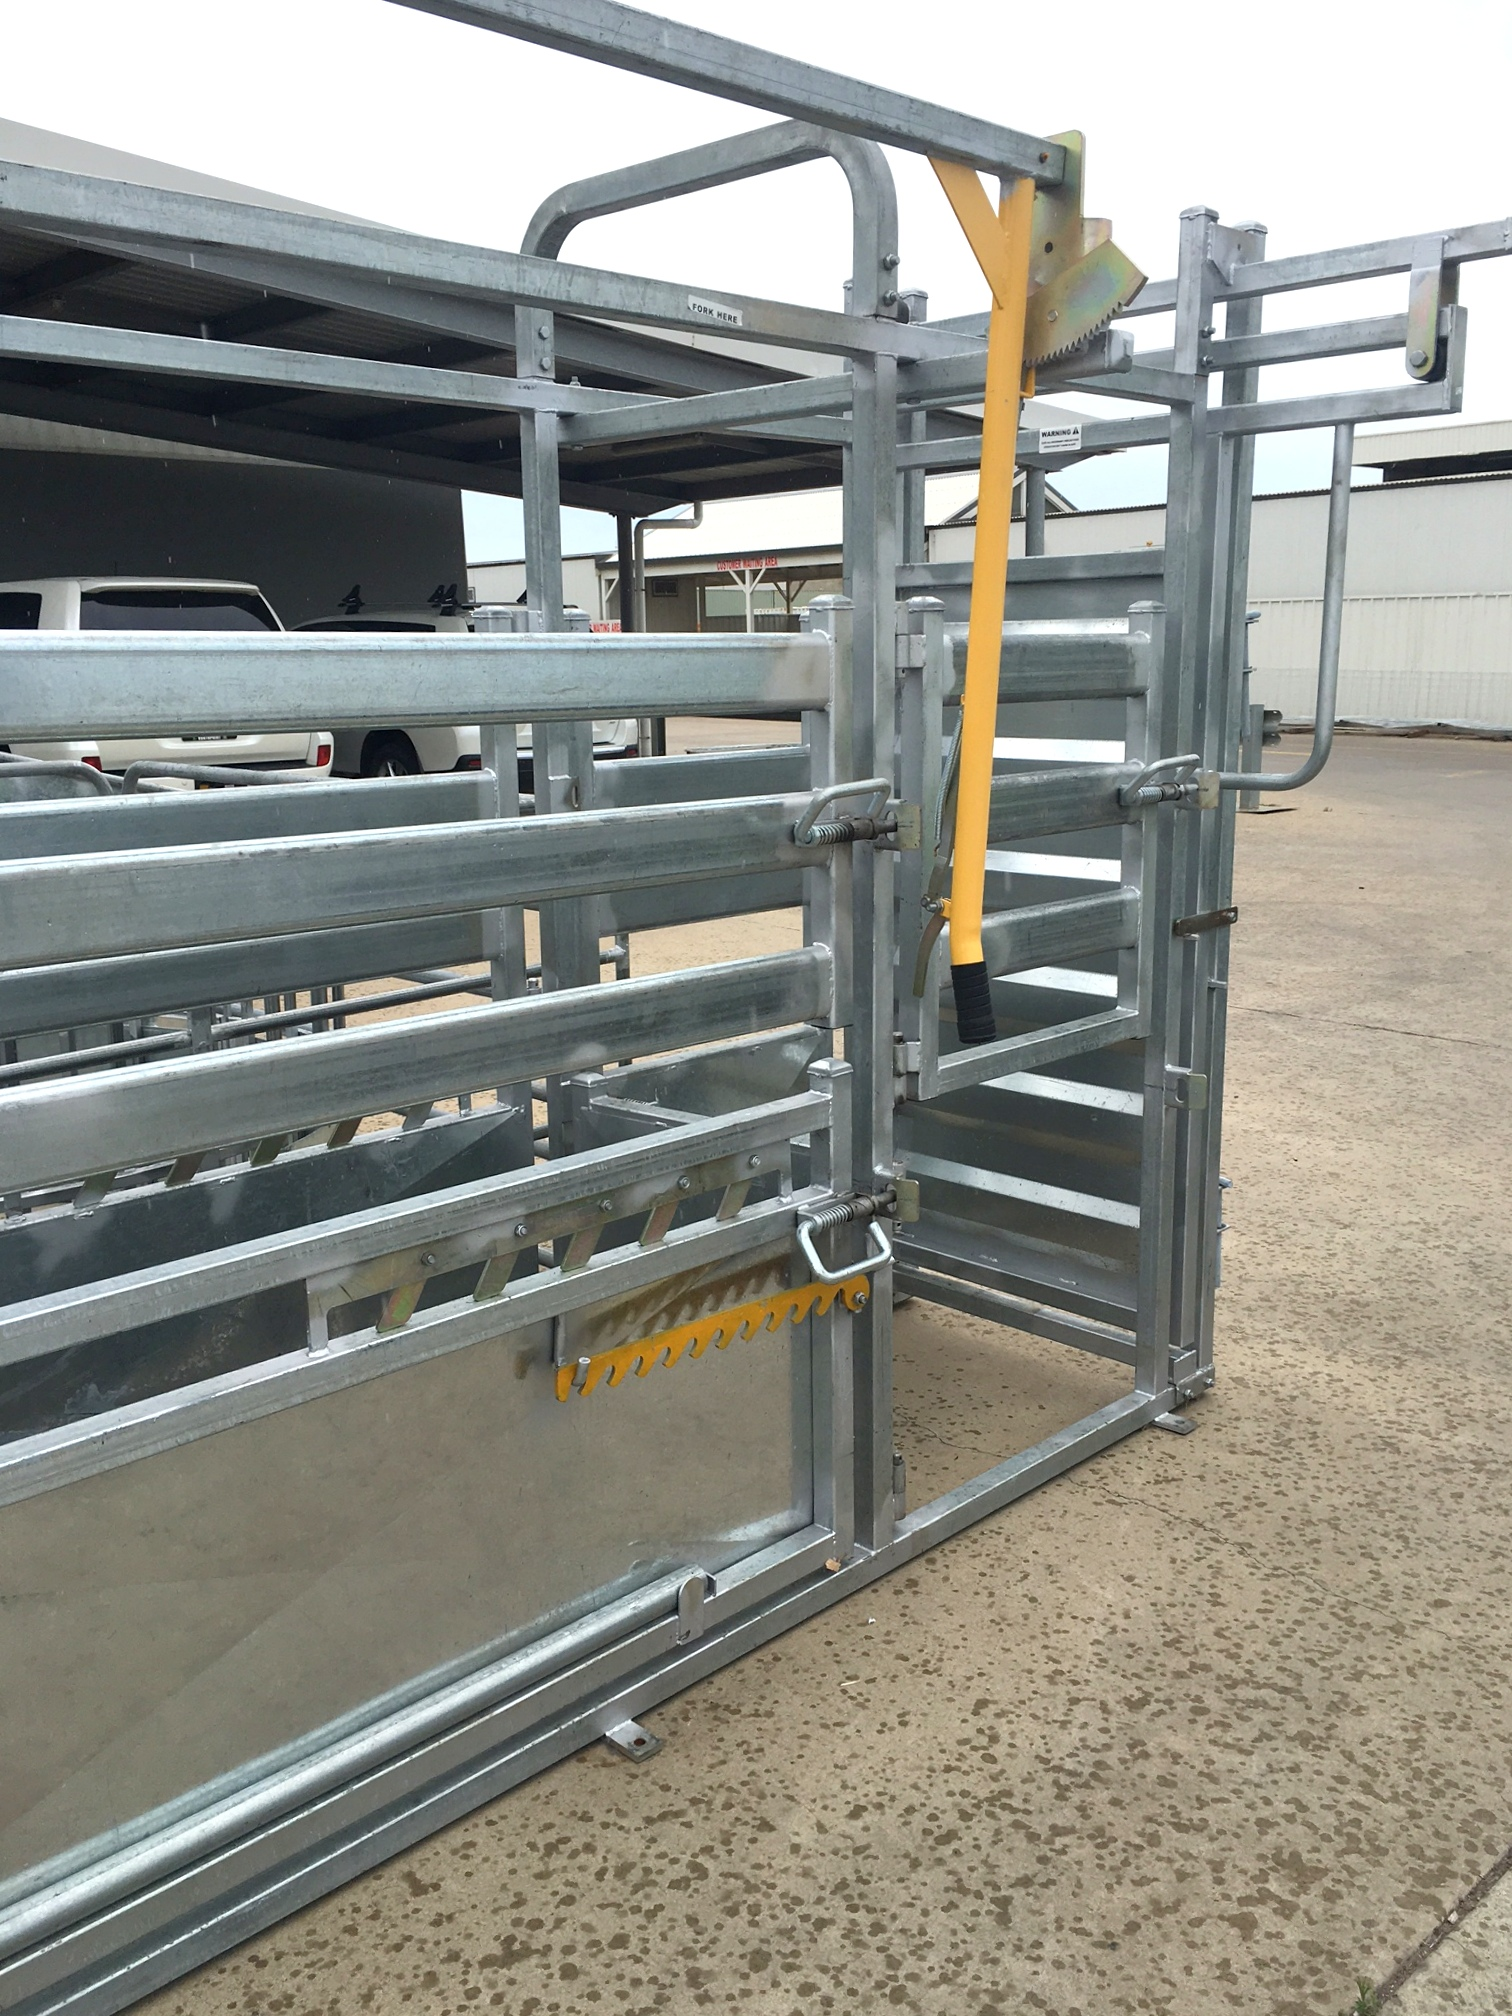 Senturion-Steel-Supplies-Vet-Cattle-Crus